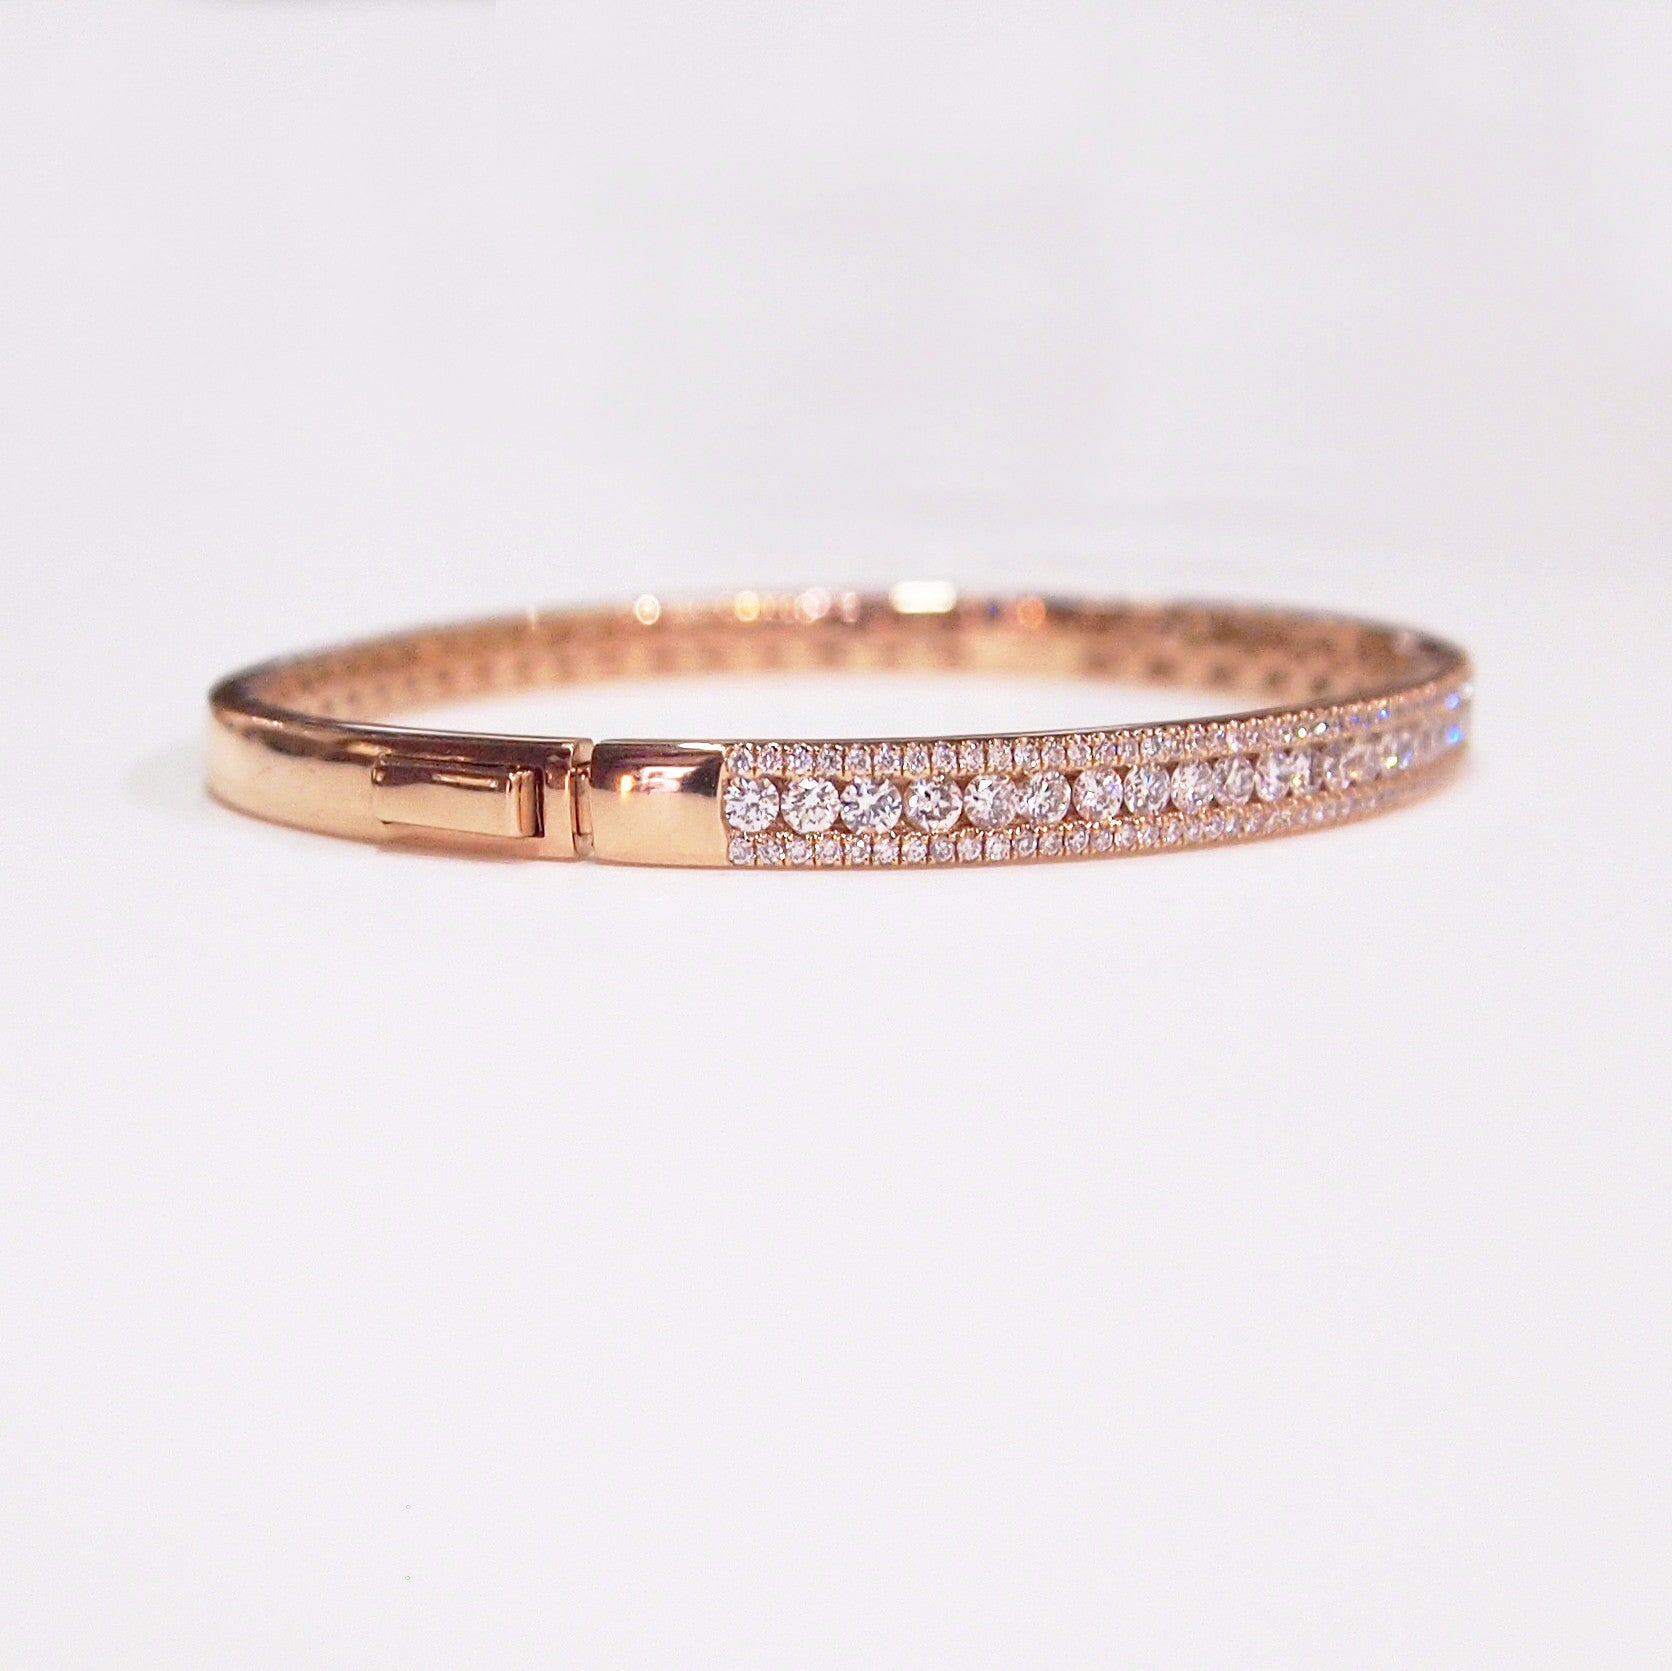 shy rogers bangle creation gold save diamond rose bracelet in bangles